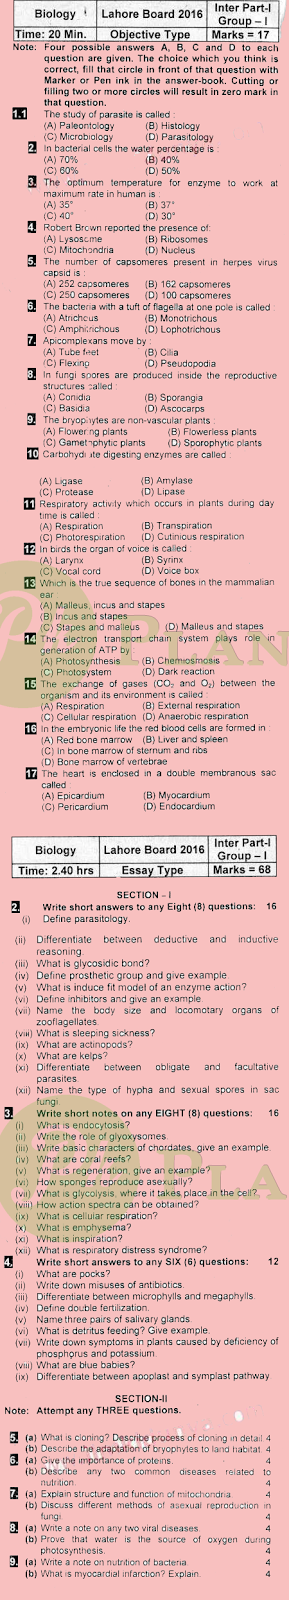 Intermediate Part 1 Past Papers Lahore Board 2016 Biology Group I